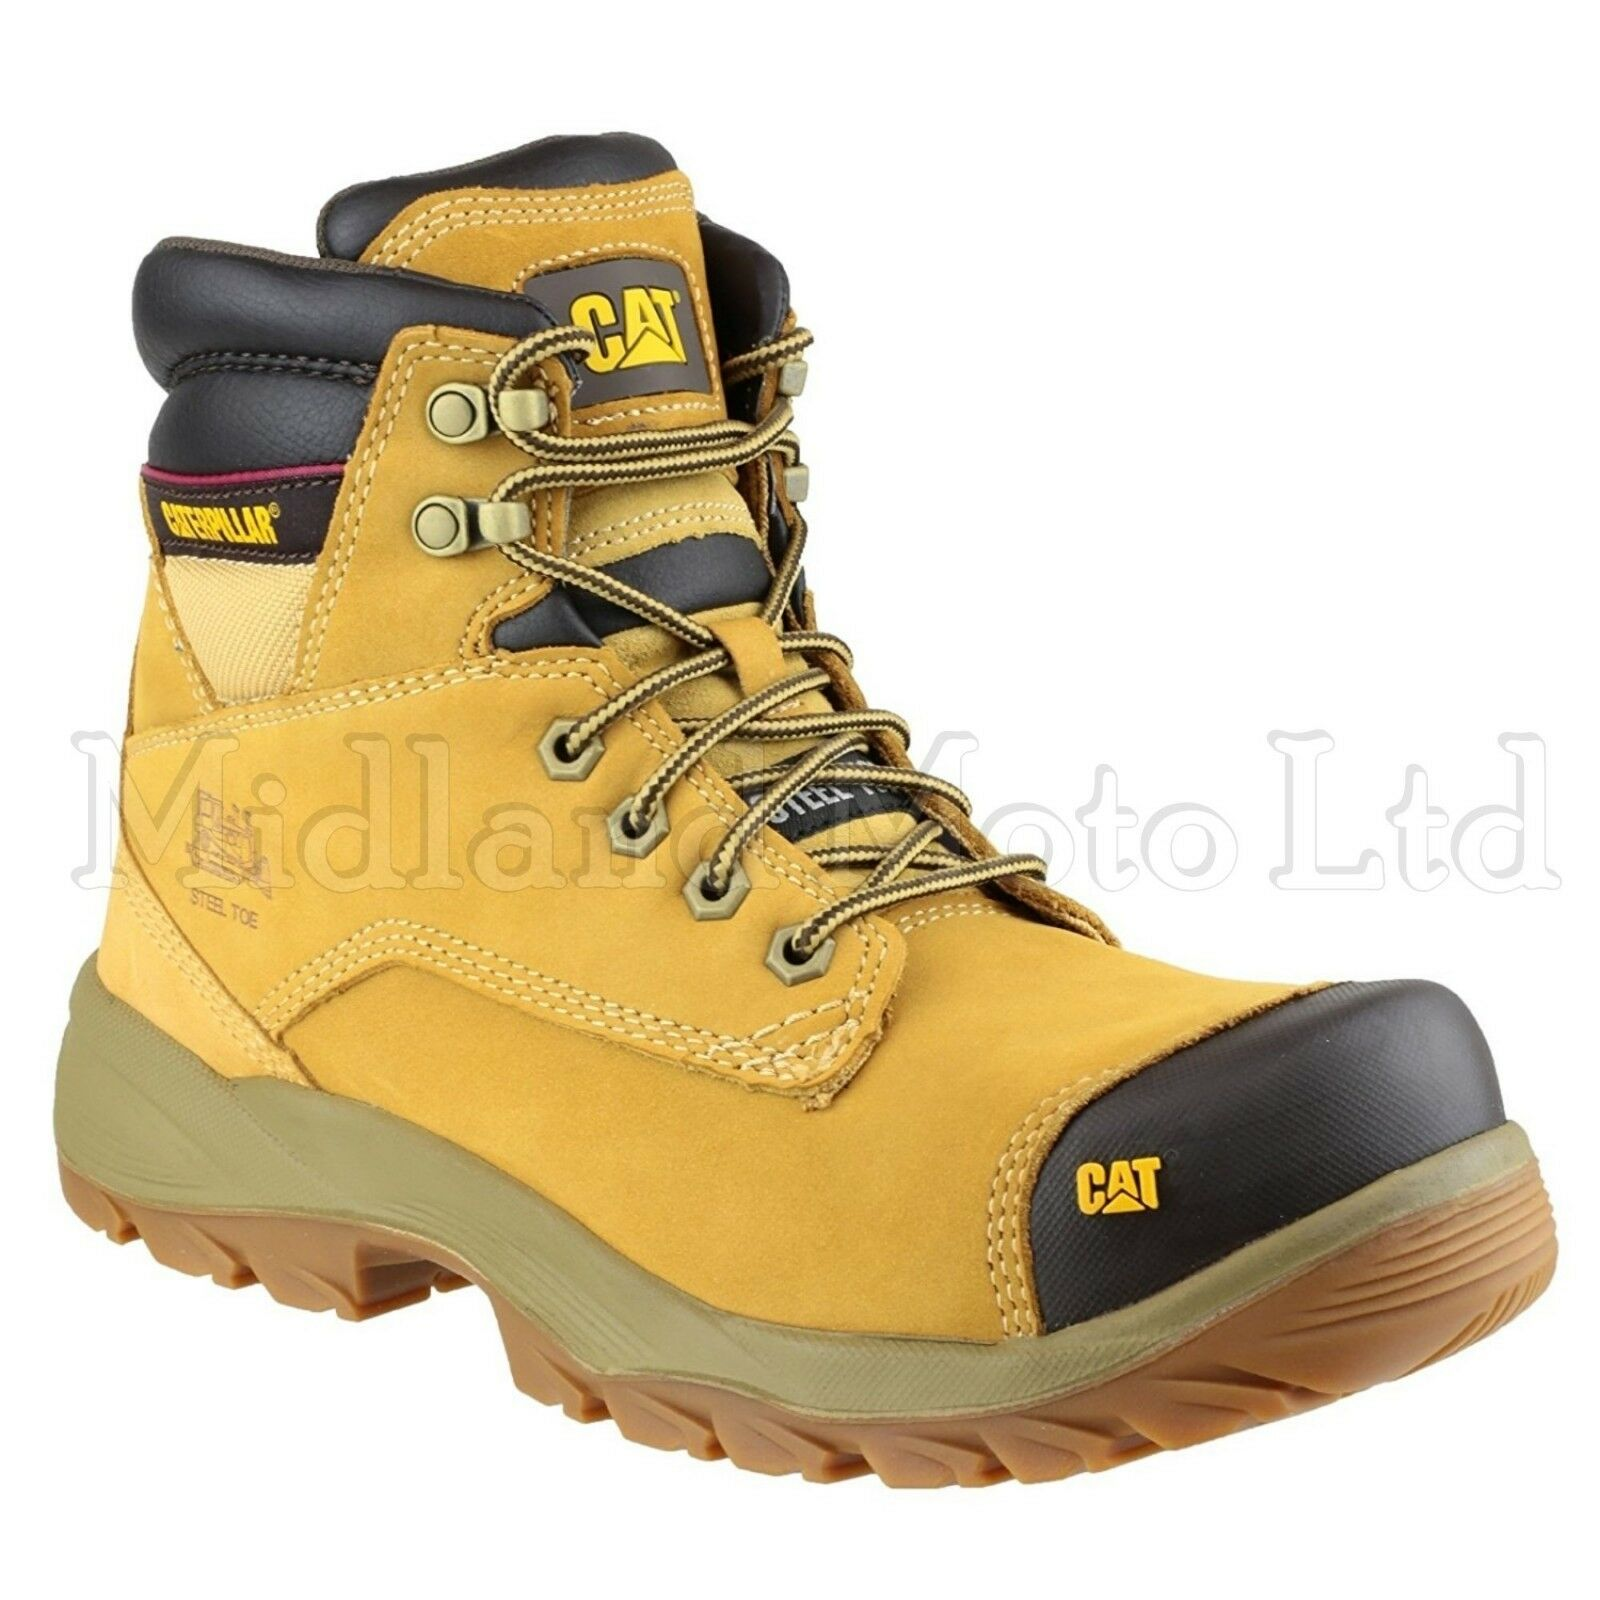 Caterpillar Spiro S3 Steel Toe Cap Safety Honey Nubuck Stiefel, CAT, schuhe 7050